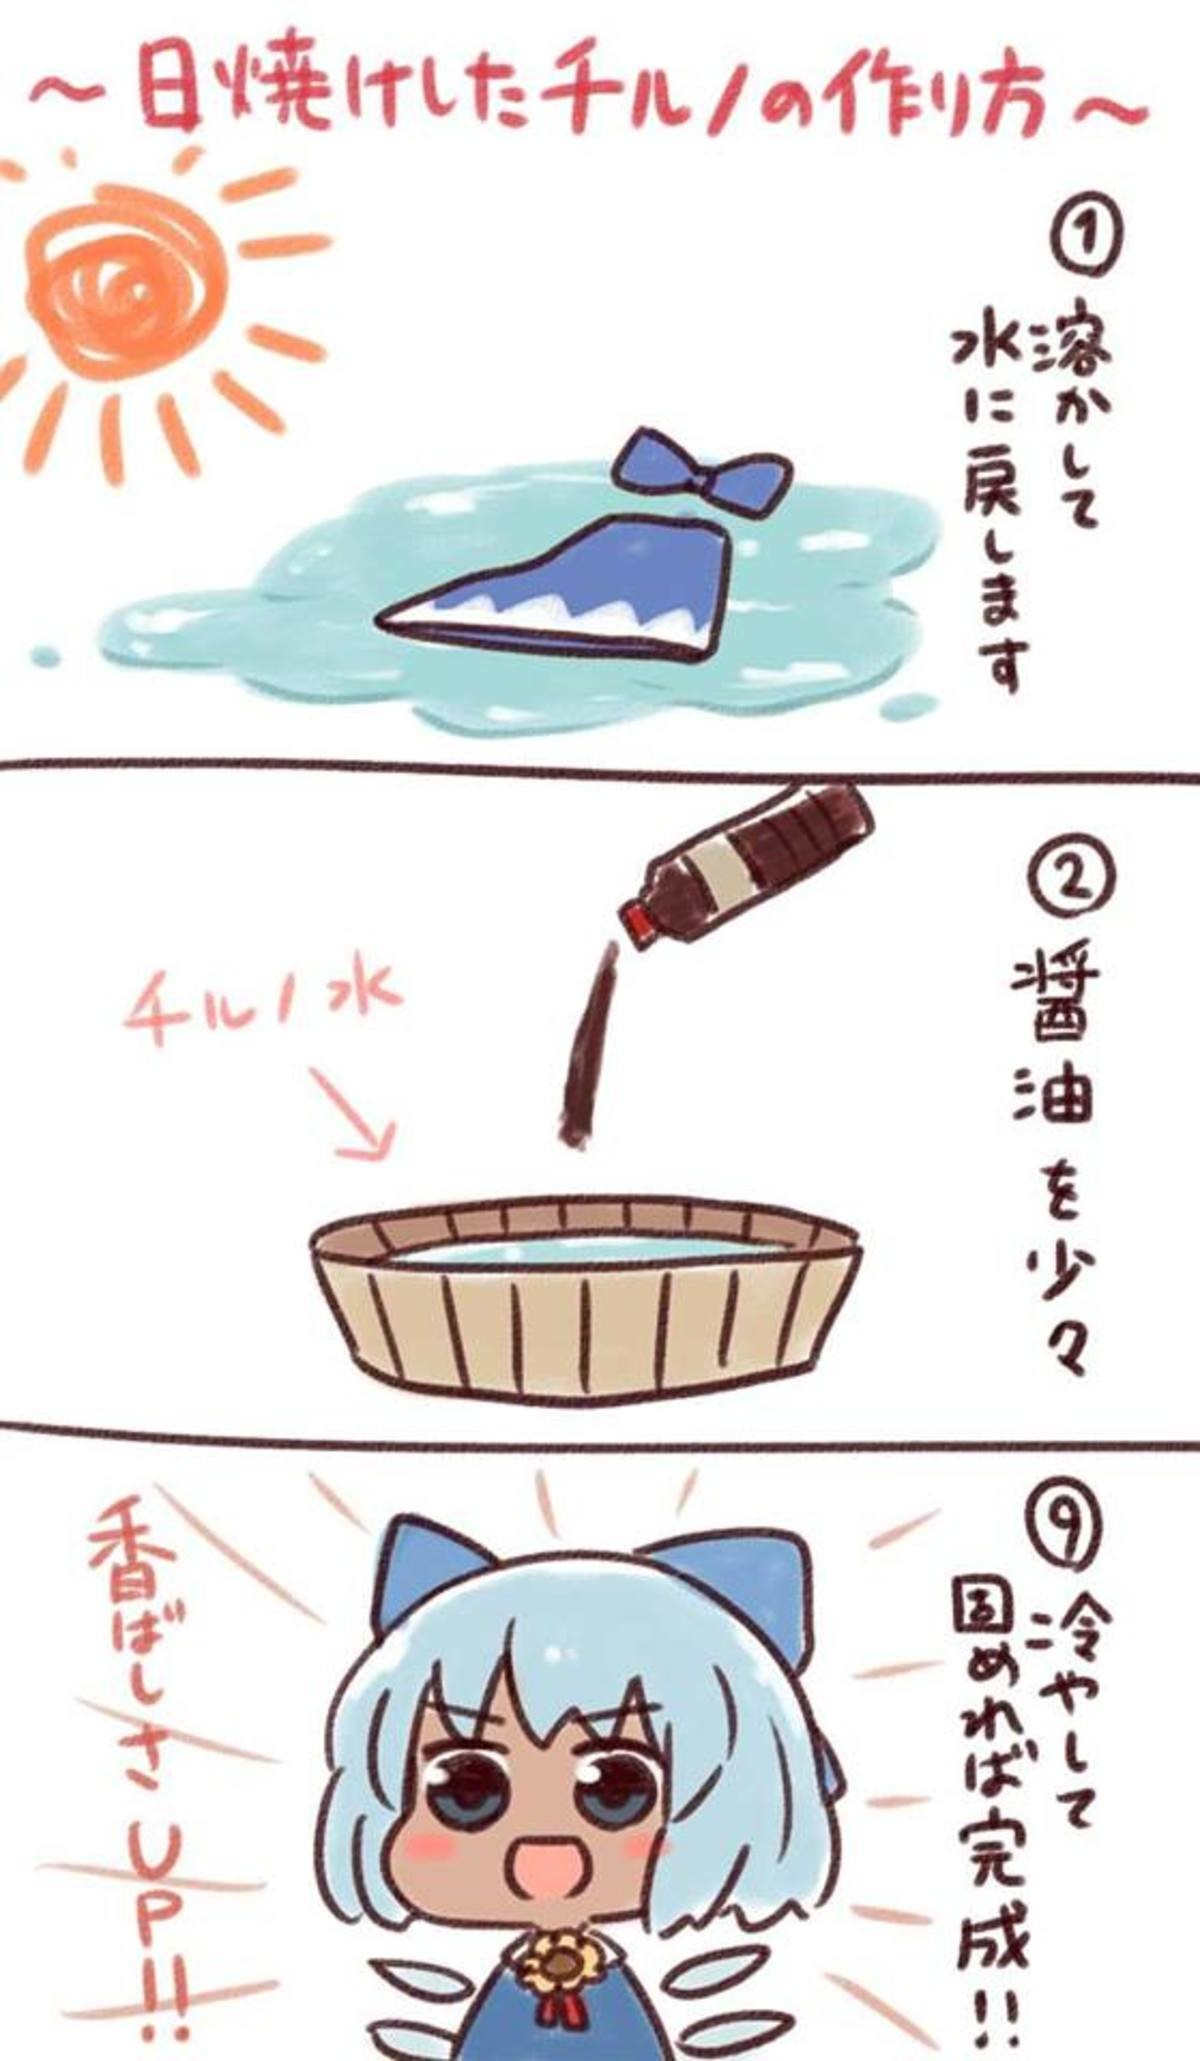 Tanned Cirno. @honey_burst.. How can she be melted when she is the strongest???